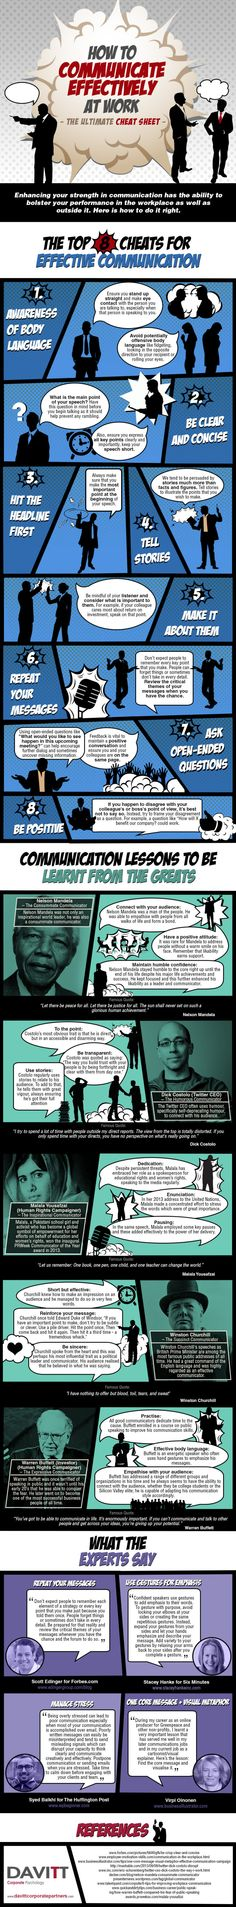 The ultimate cheat sheet on effective work communication #infographic